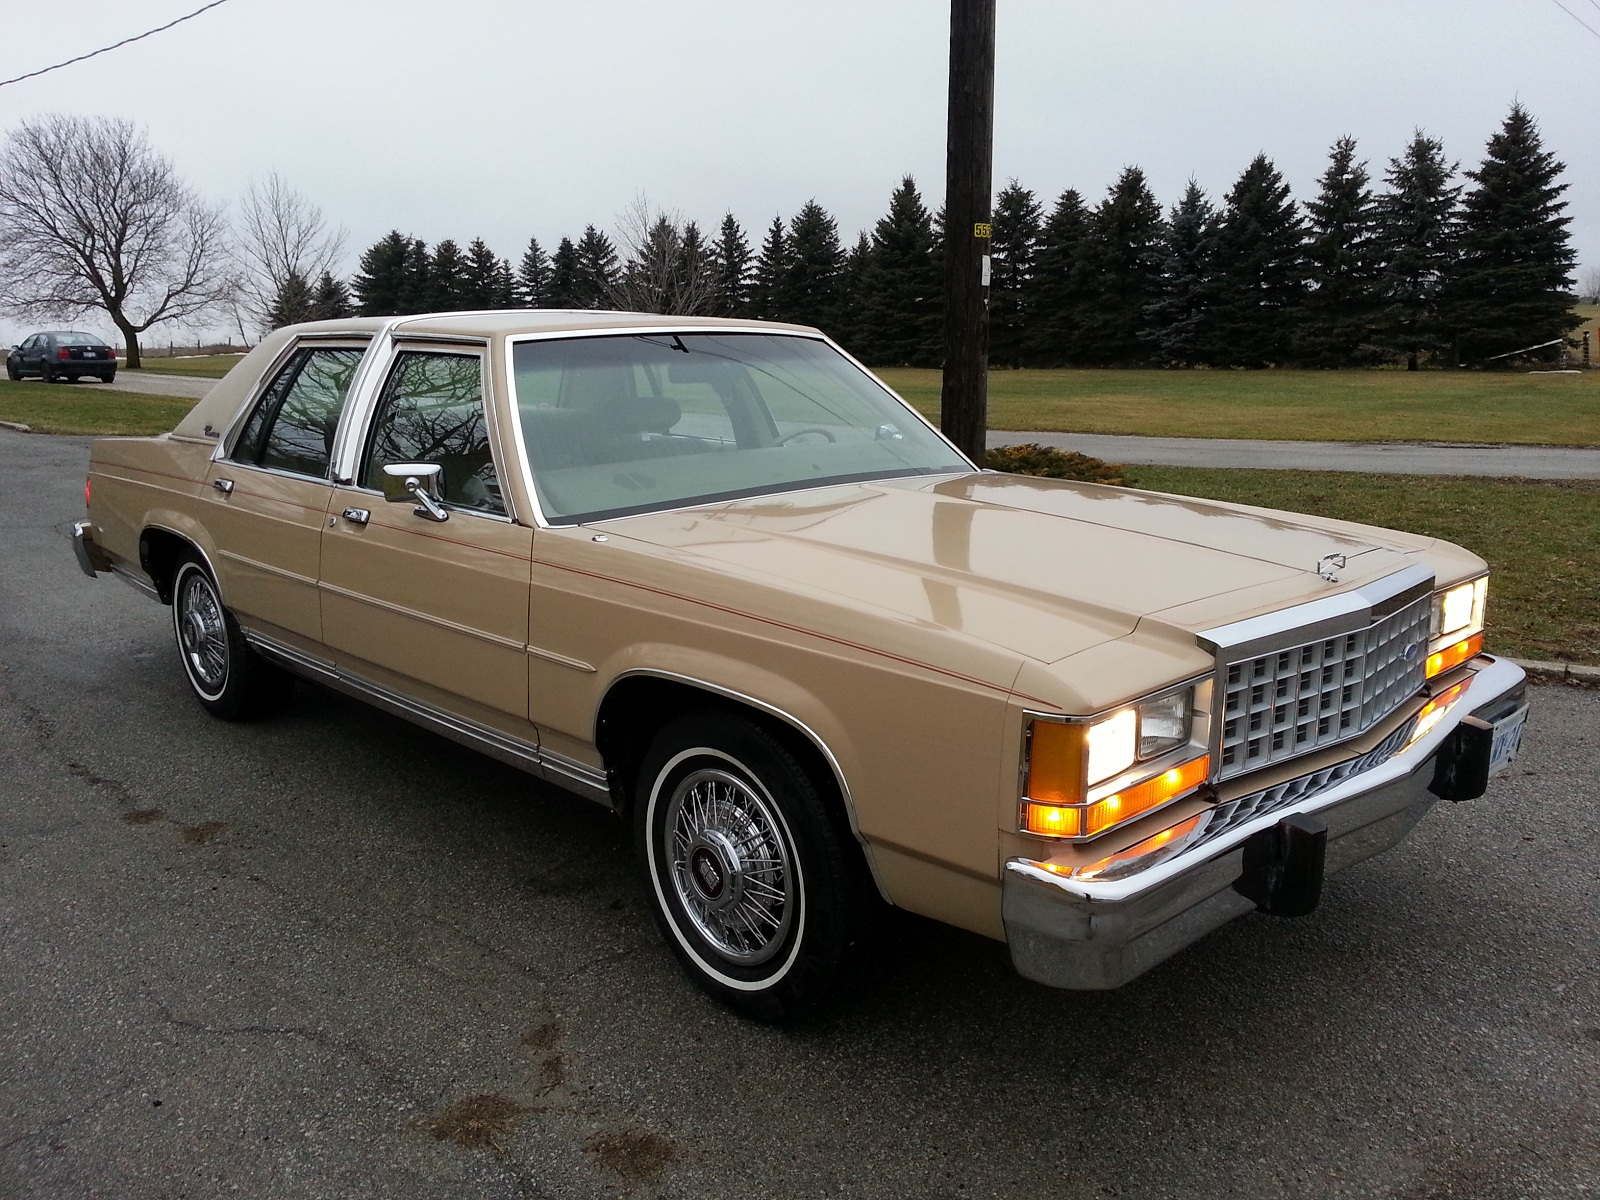 '87 LTD Crown Vic LX-20130113_164818small.jpg